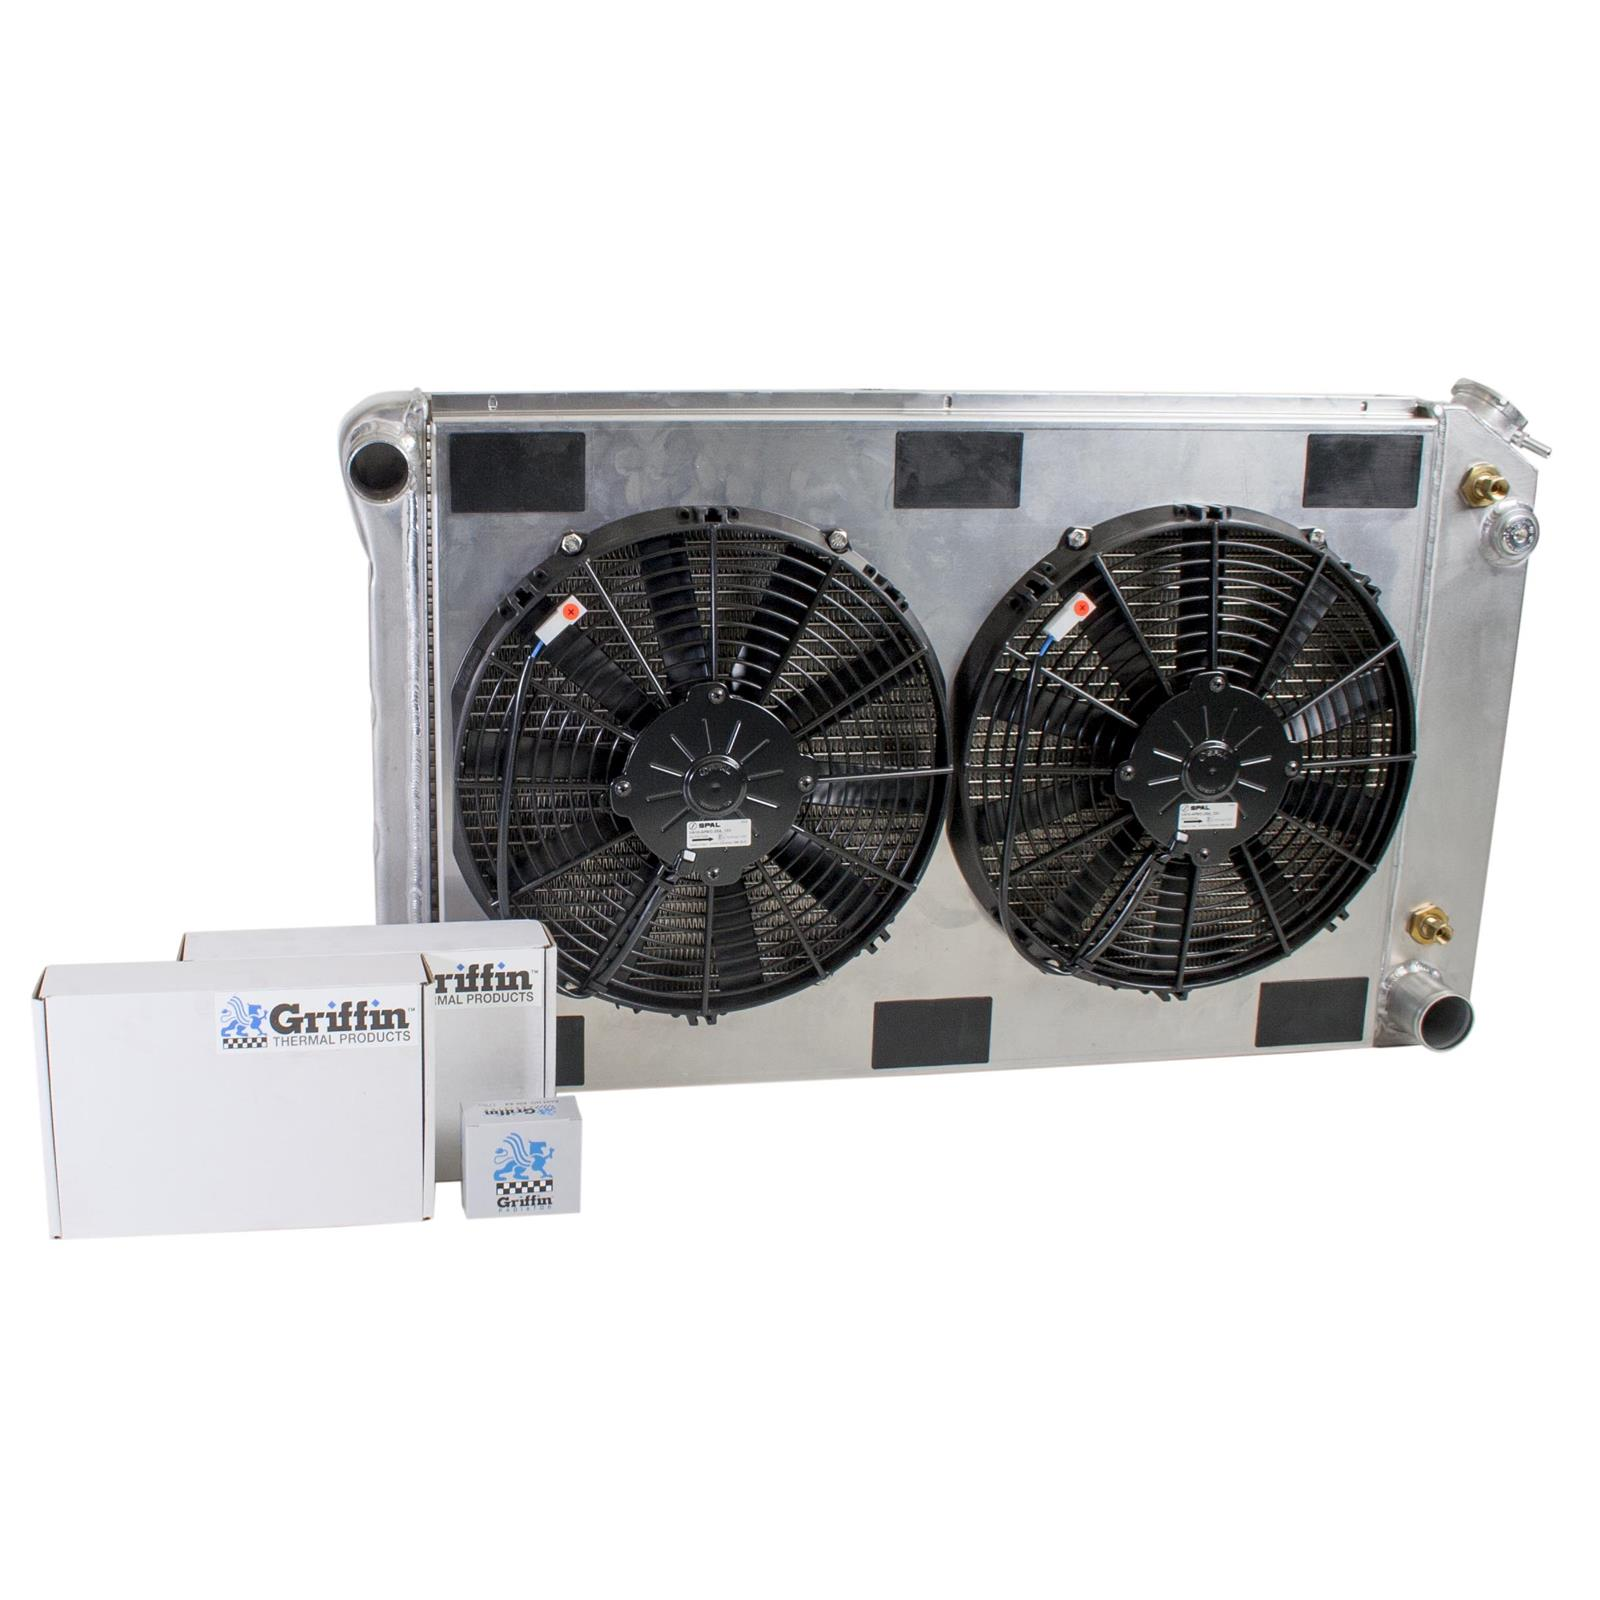 Griffin Exact Fit Radiator Combos Cu 70007 Free Shipping On Orders Fuel Filters Over 99 At Summit Racing